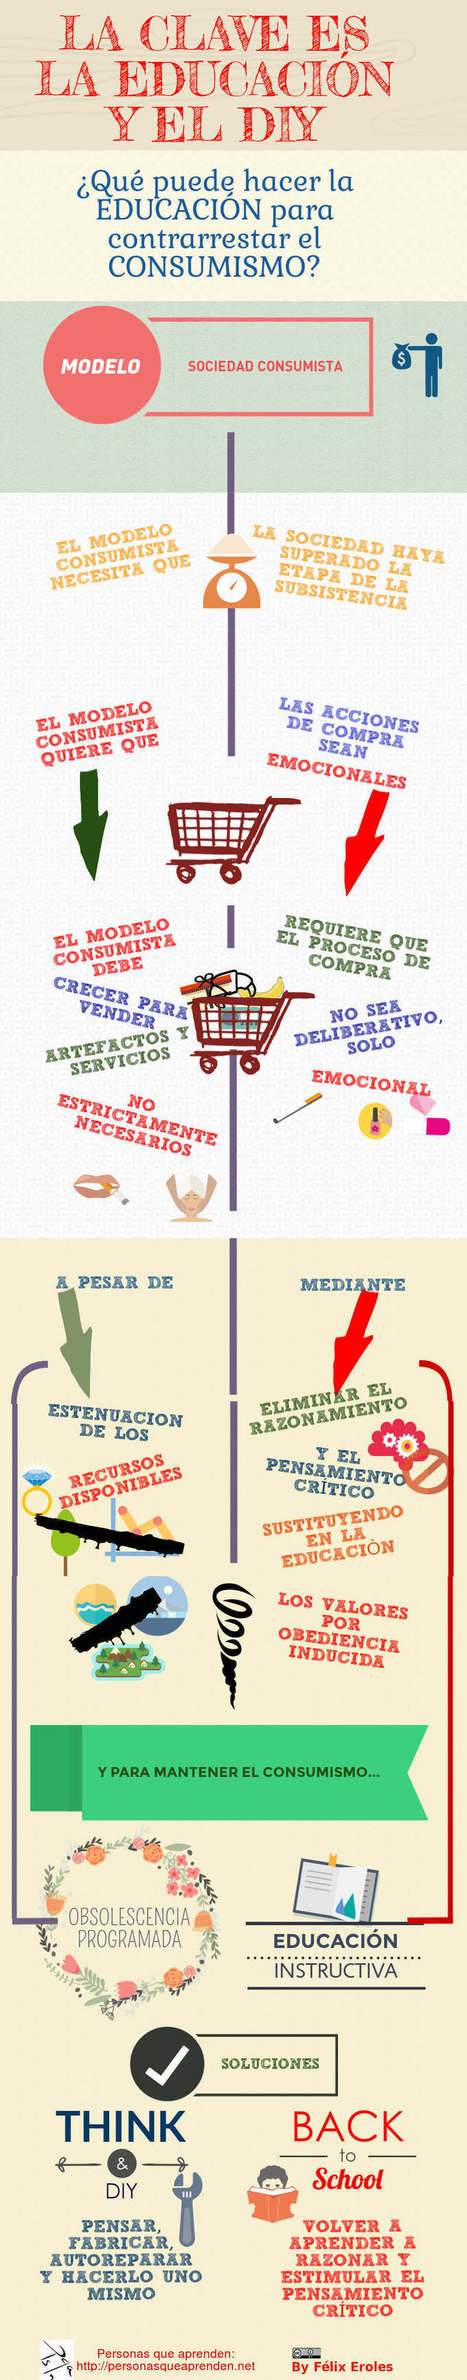 La clave: Educación y DIY, Infografía | Social eLearning, mLearning & Emotional Analysis, uLearning | Scoop.it